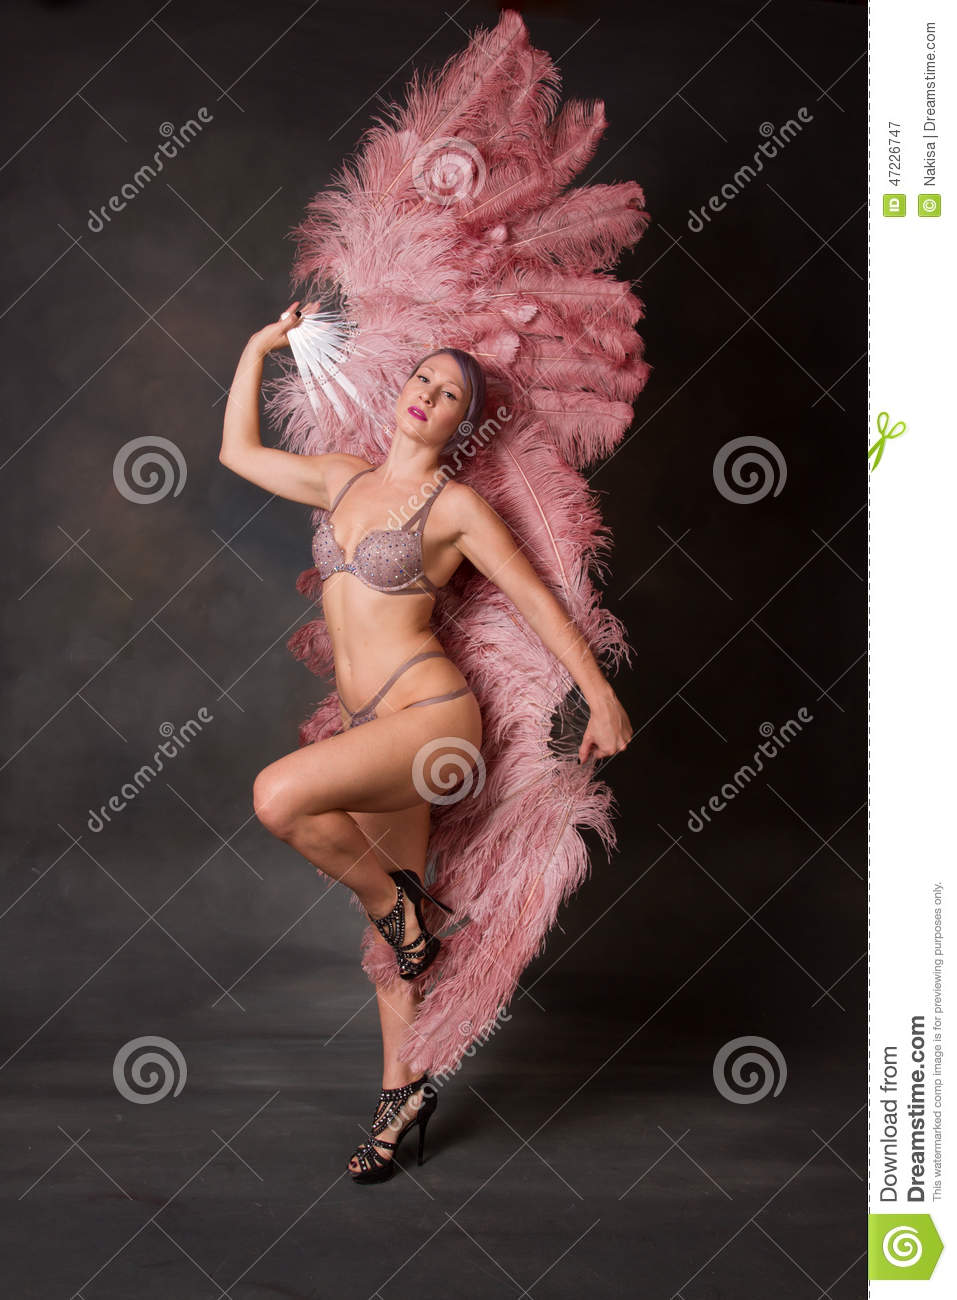 Burlesque dancer with feather fans